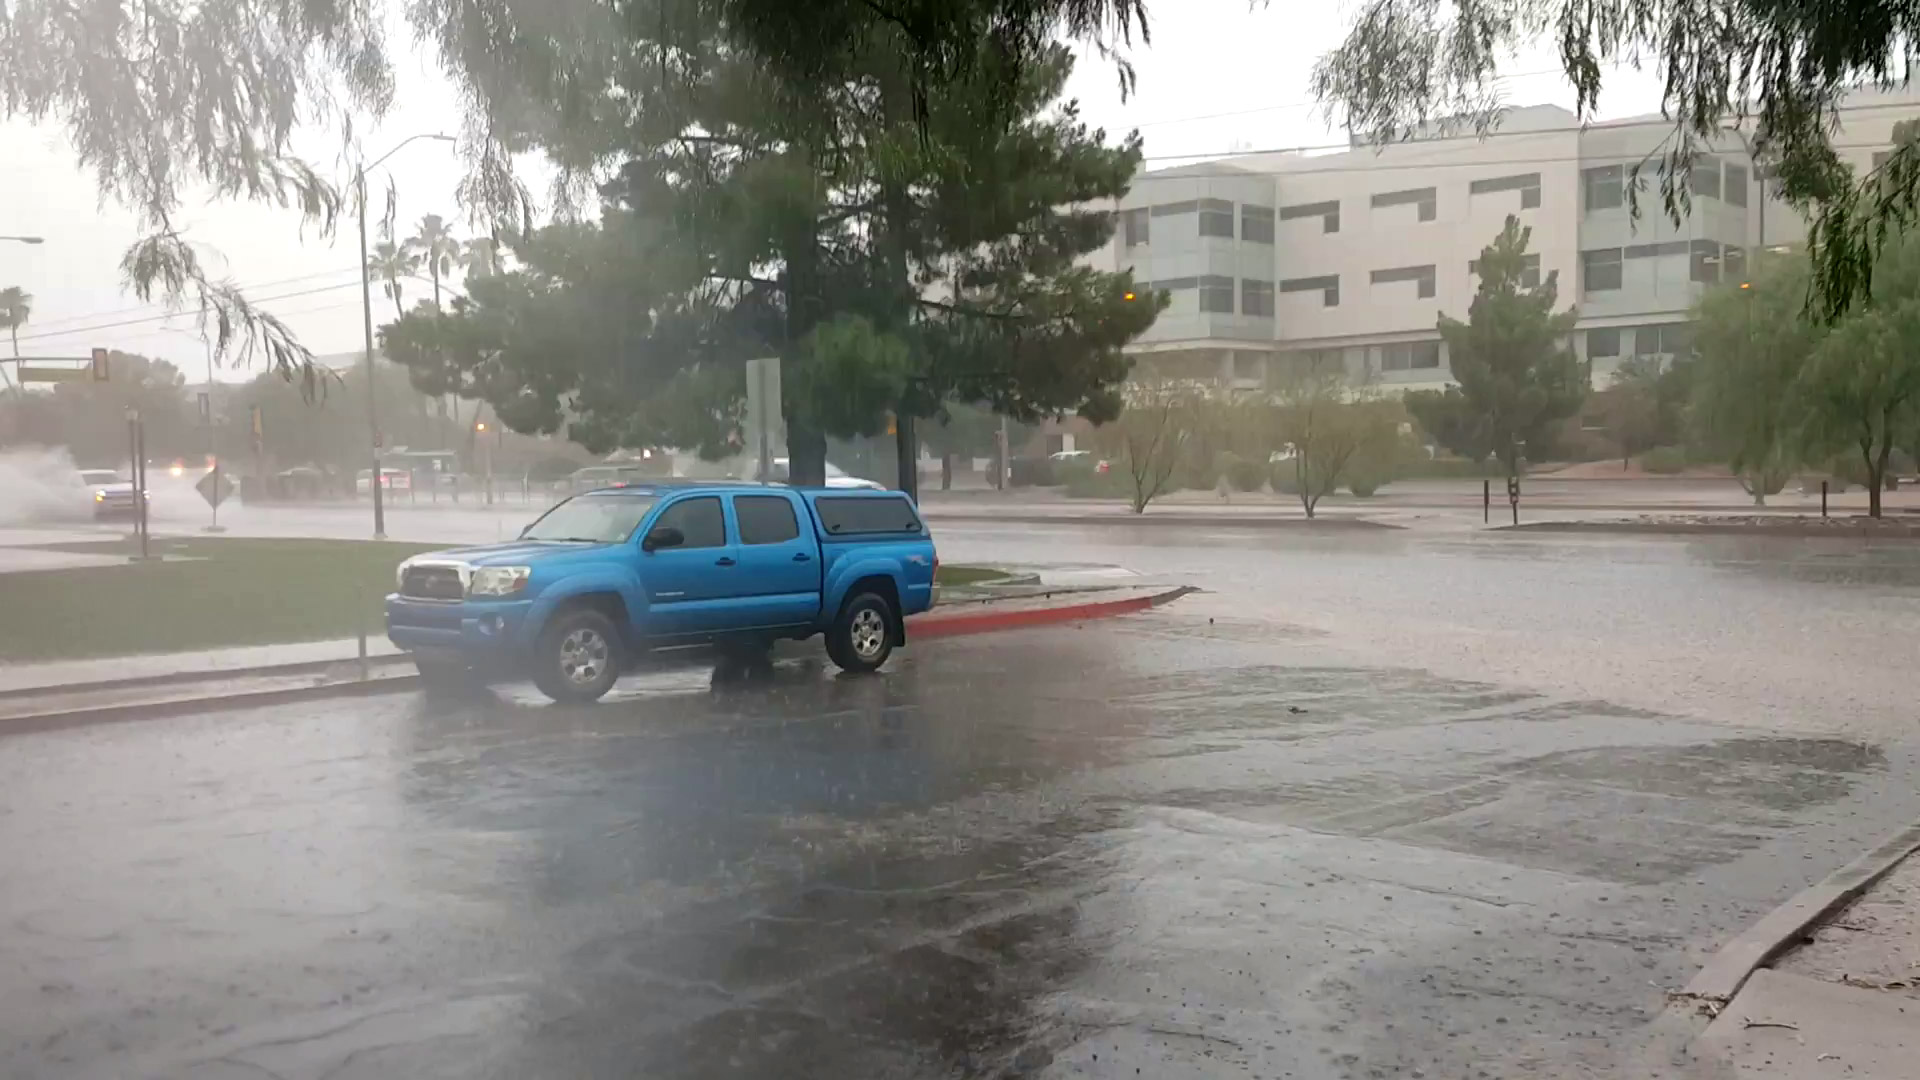 Monsoon Rain at Campbell hero